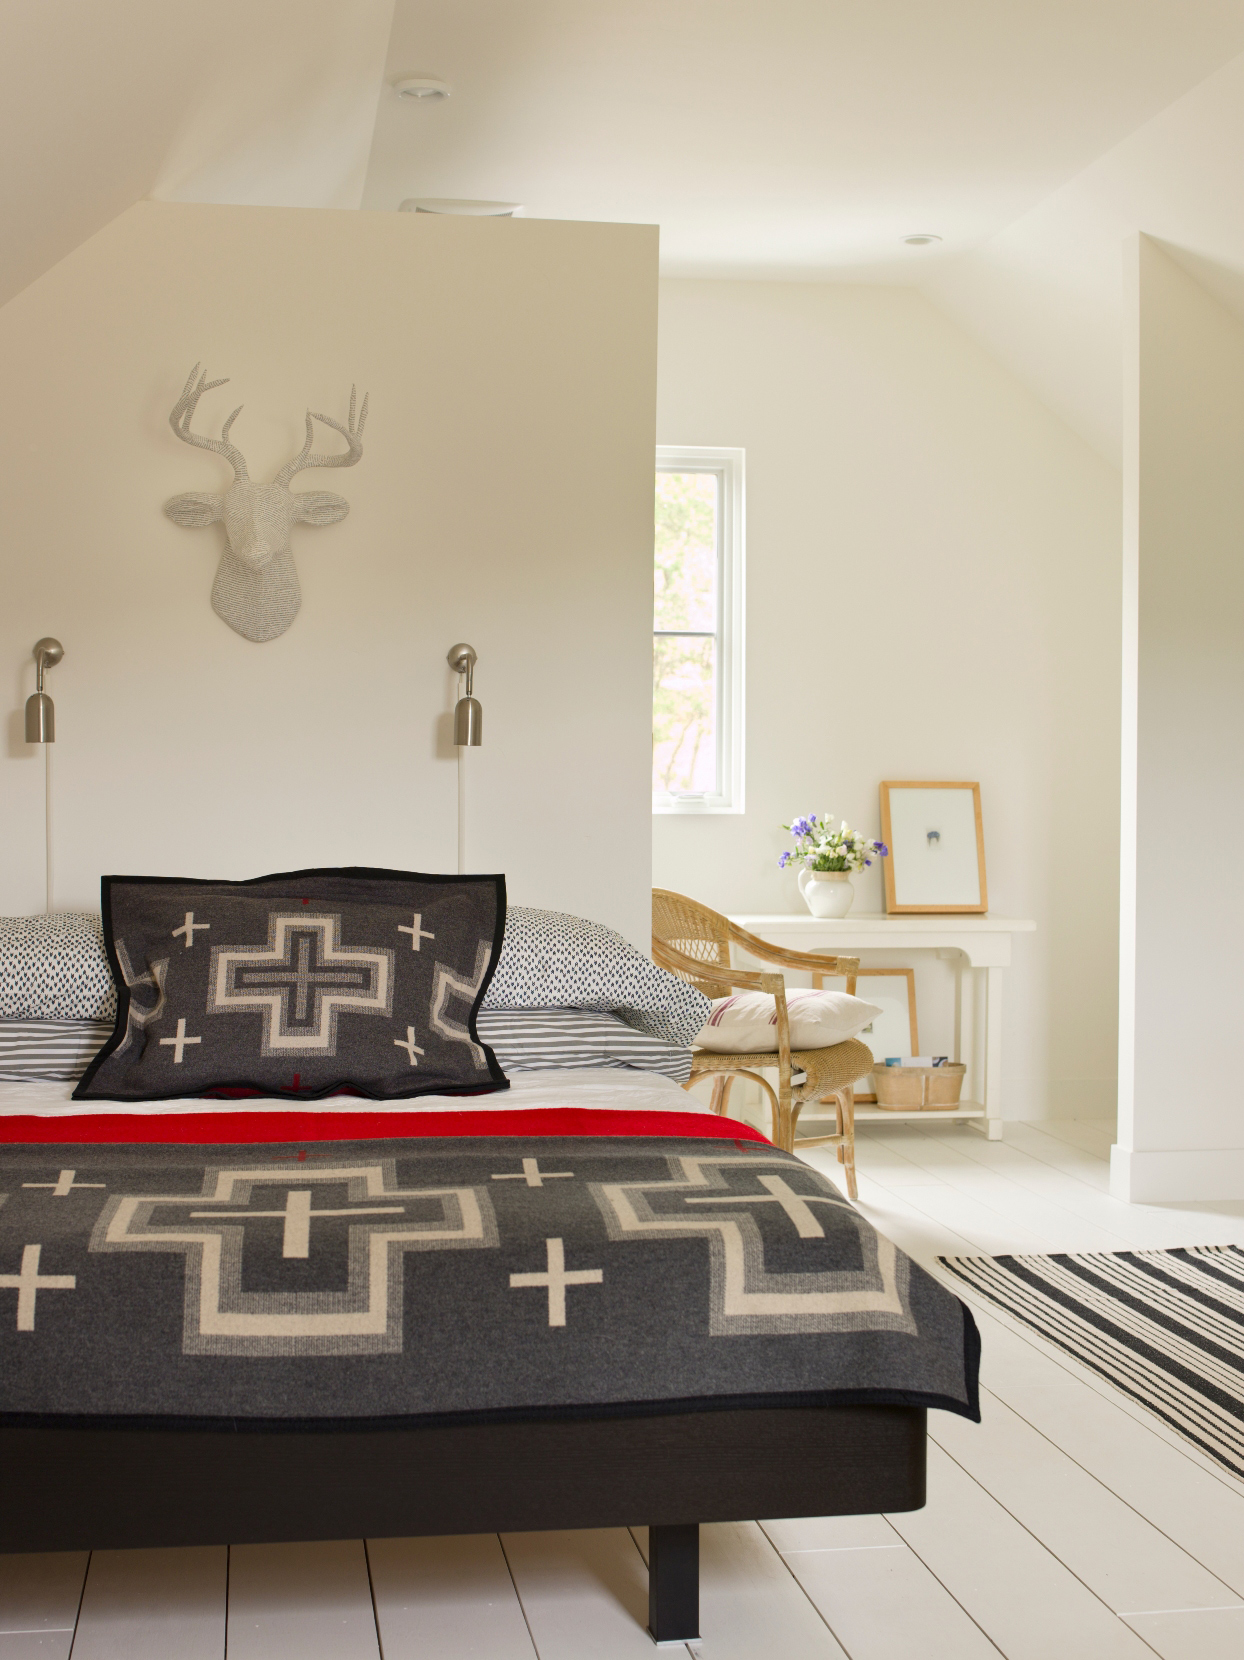 Modern eclectic bedroom with black and red accents